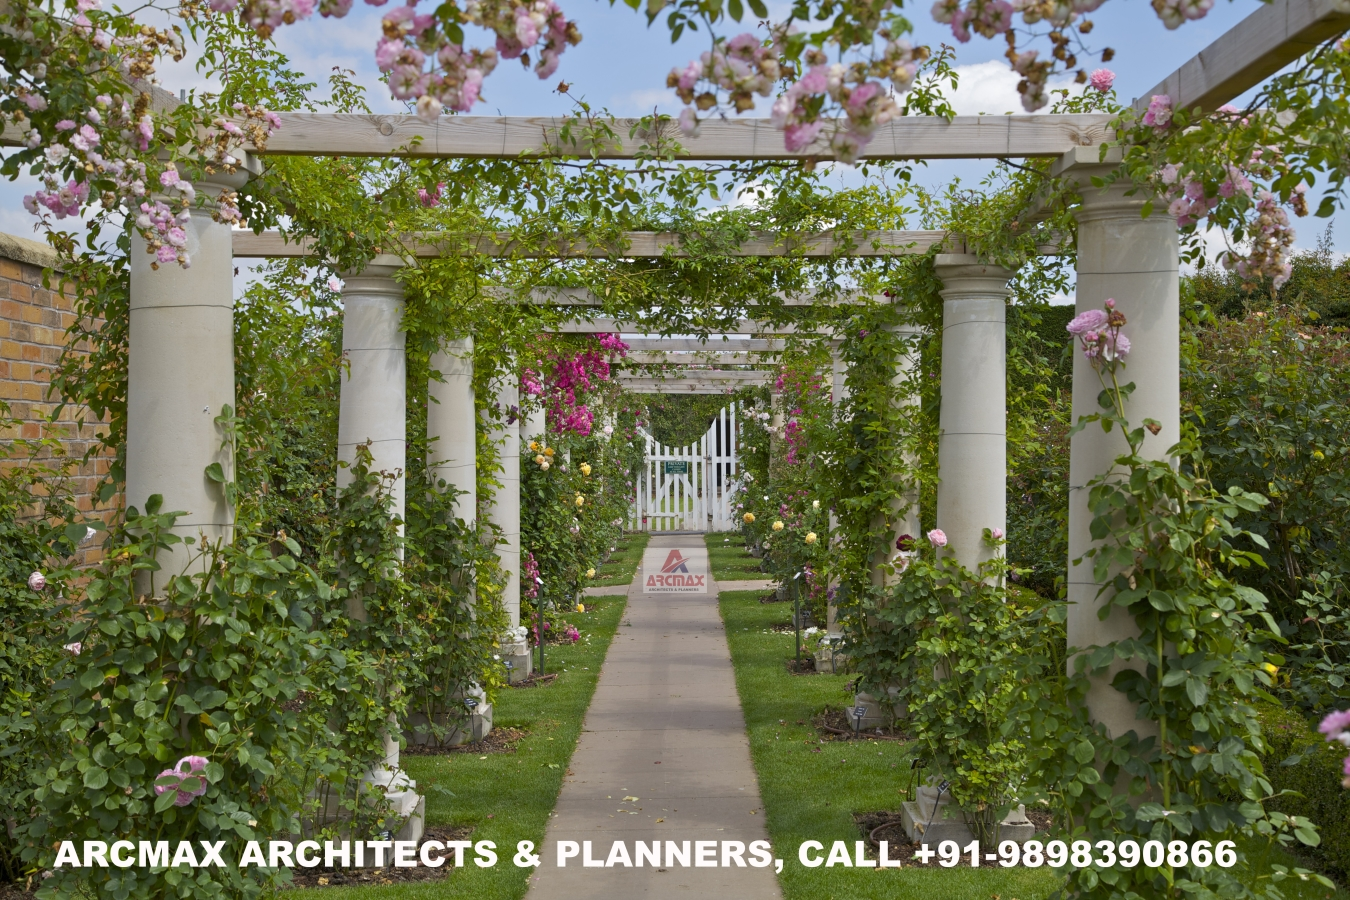 Best Architect for Marriage Garden Design in India ...